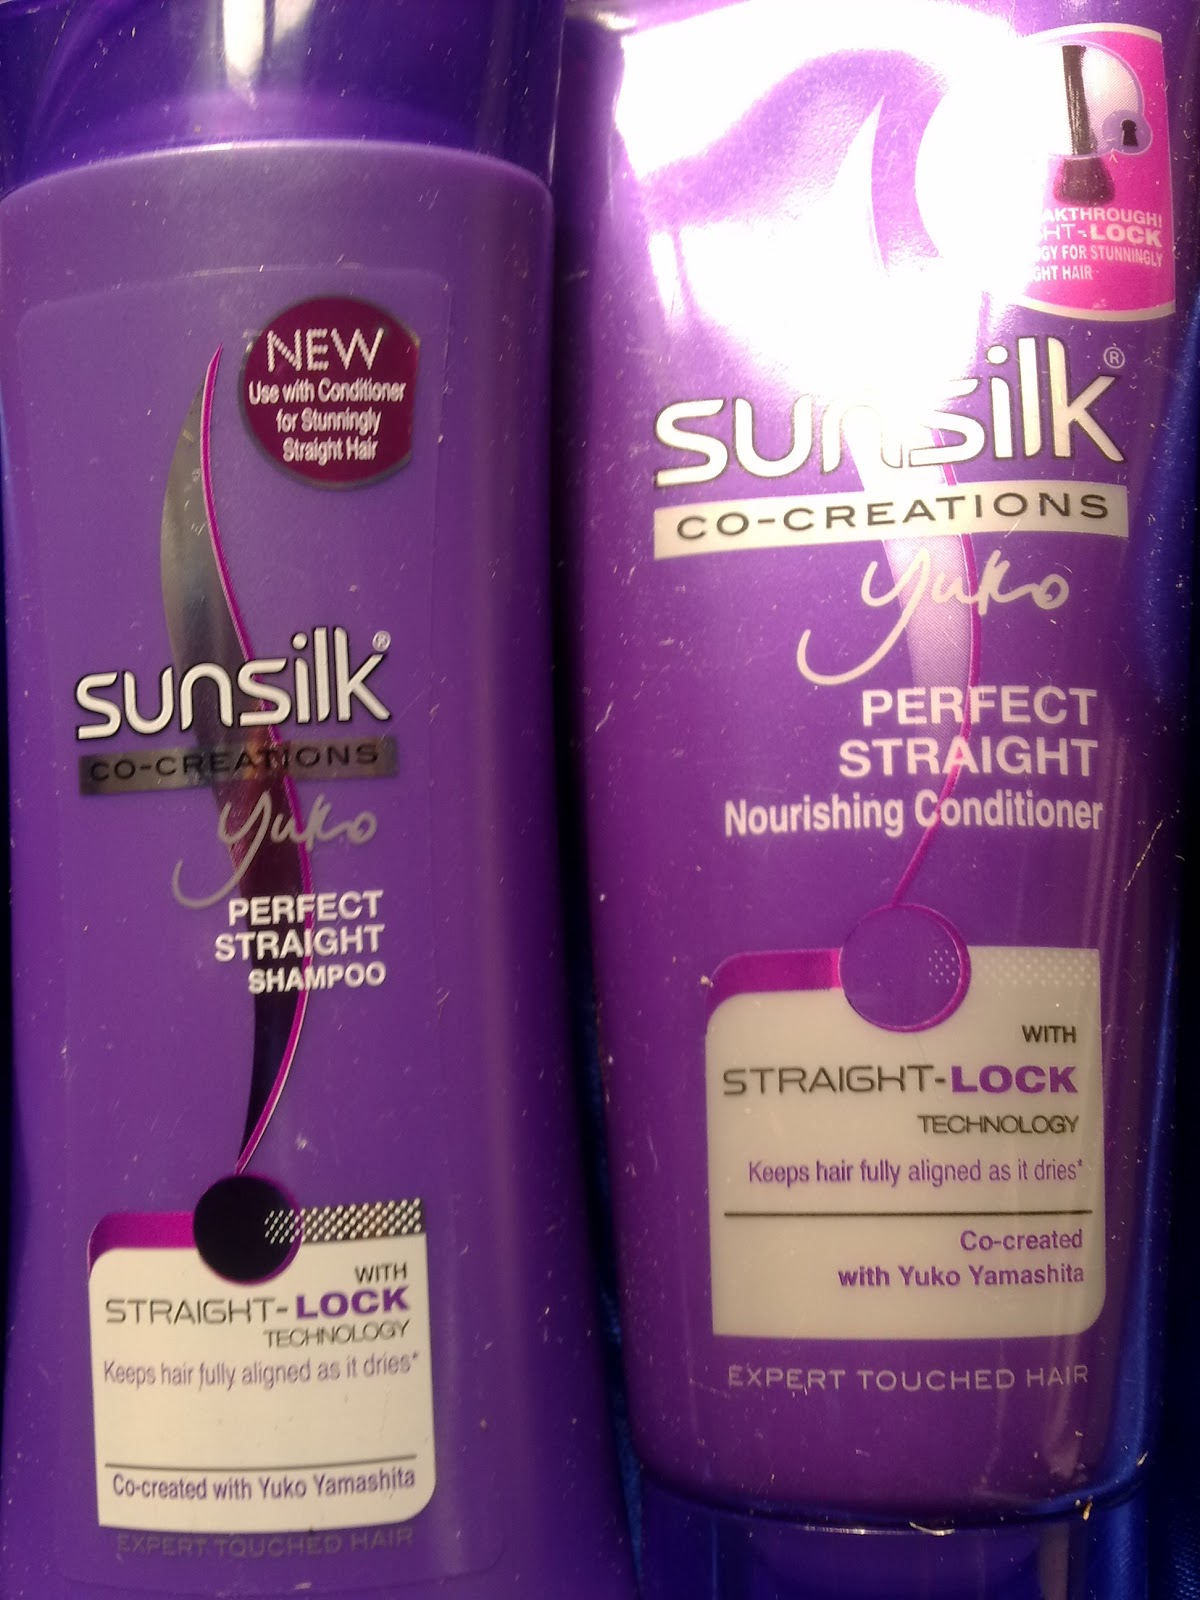 conclusion about sunsilk shampoo Shampoo has ability to clean your hair and remove dandruff but new sunsilk color shampoo is not for removing dandruff or cleaning hairs but make hairs colorful.